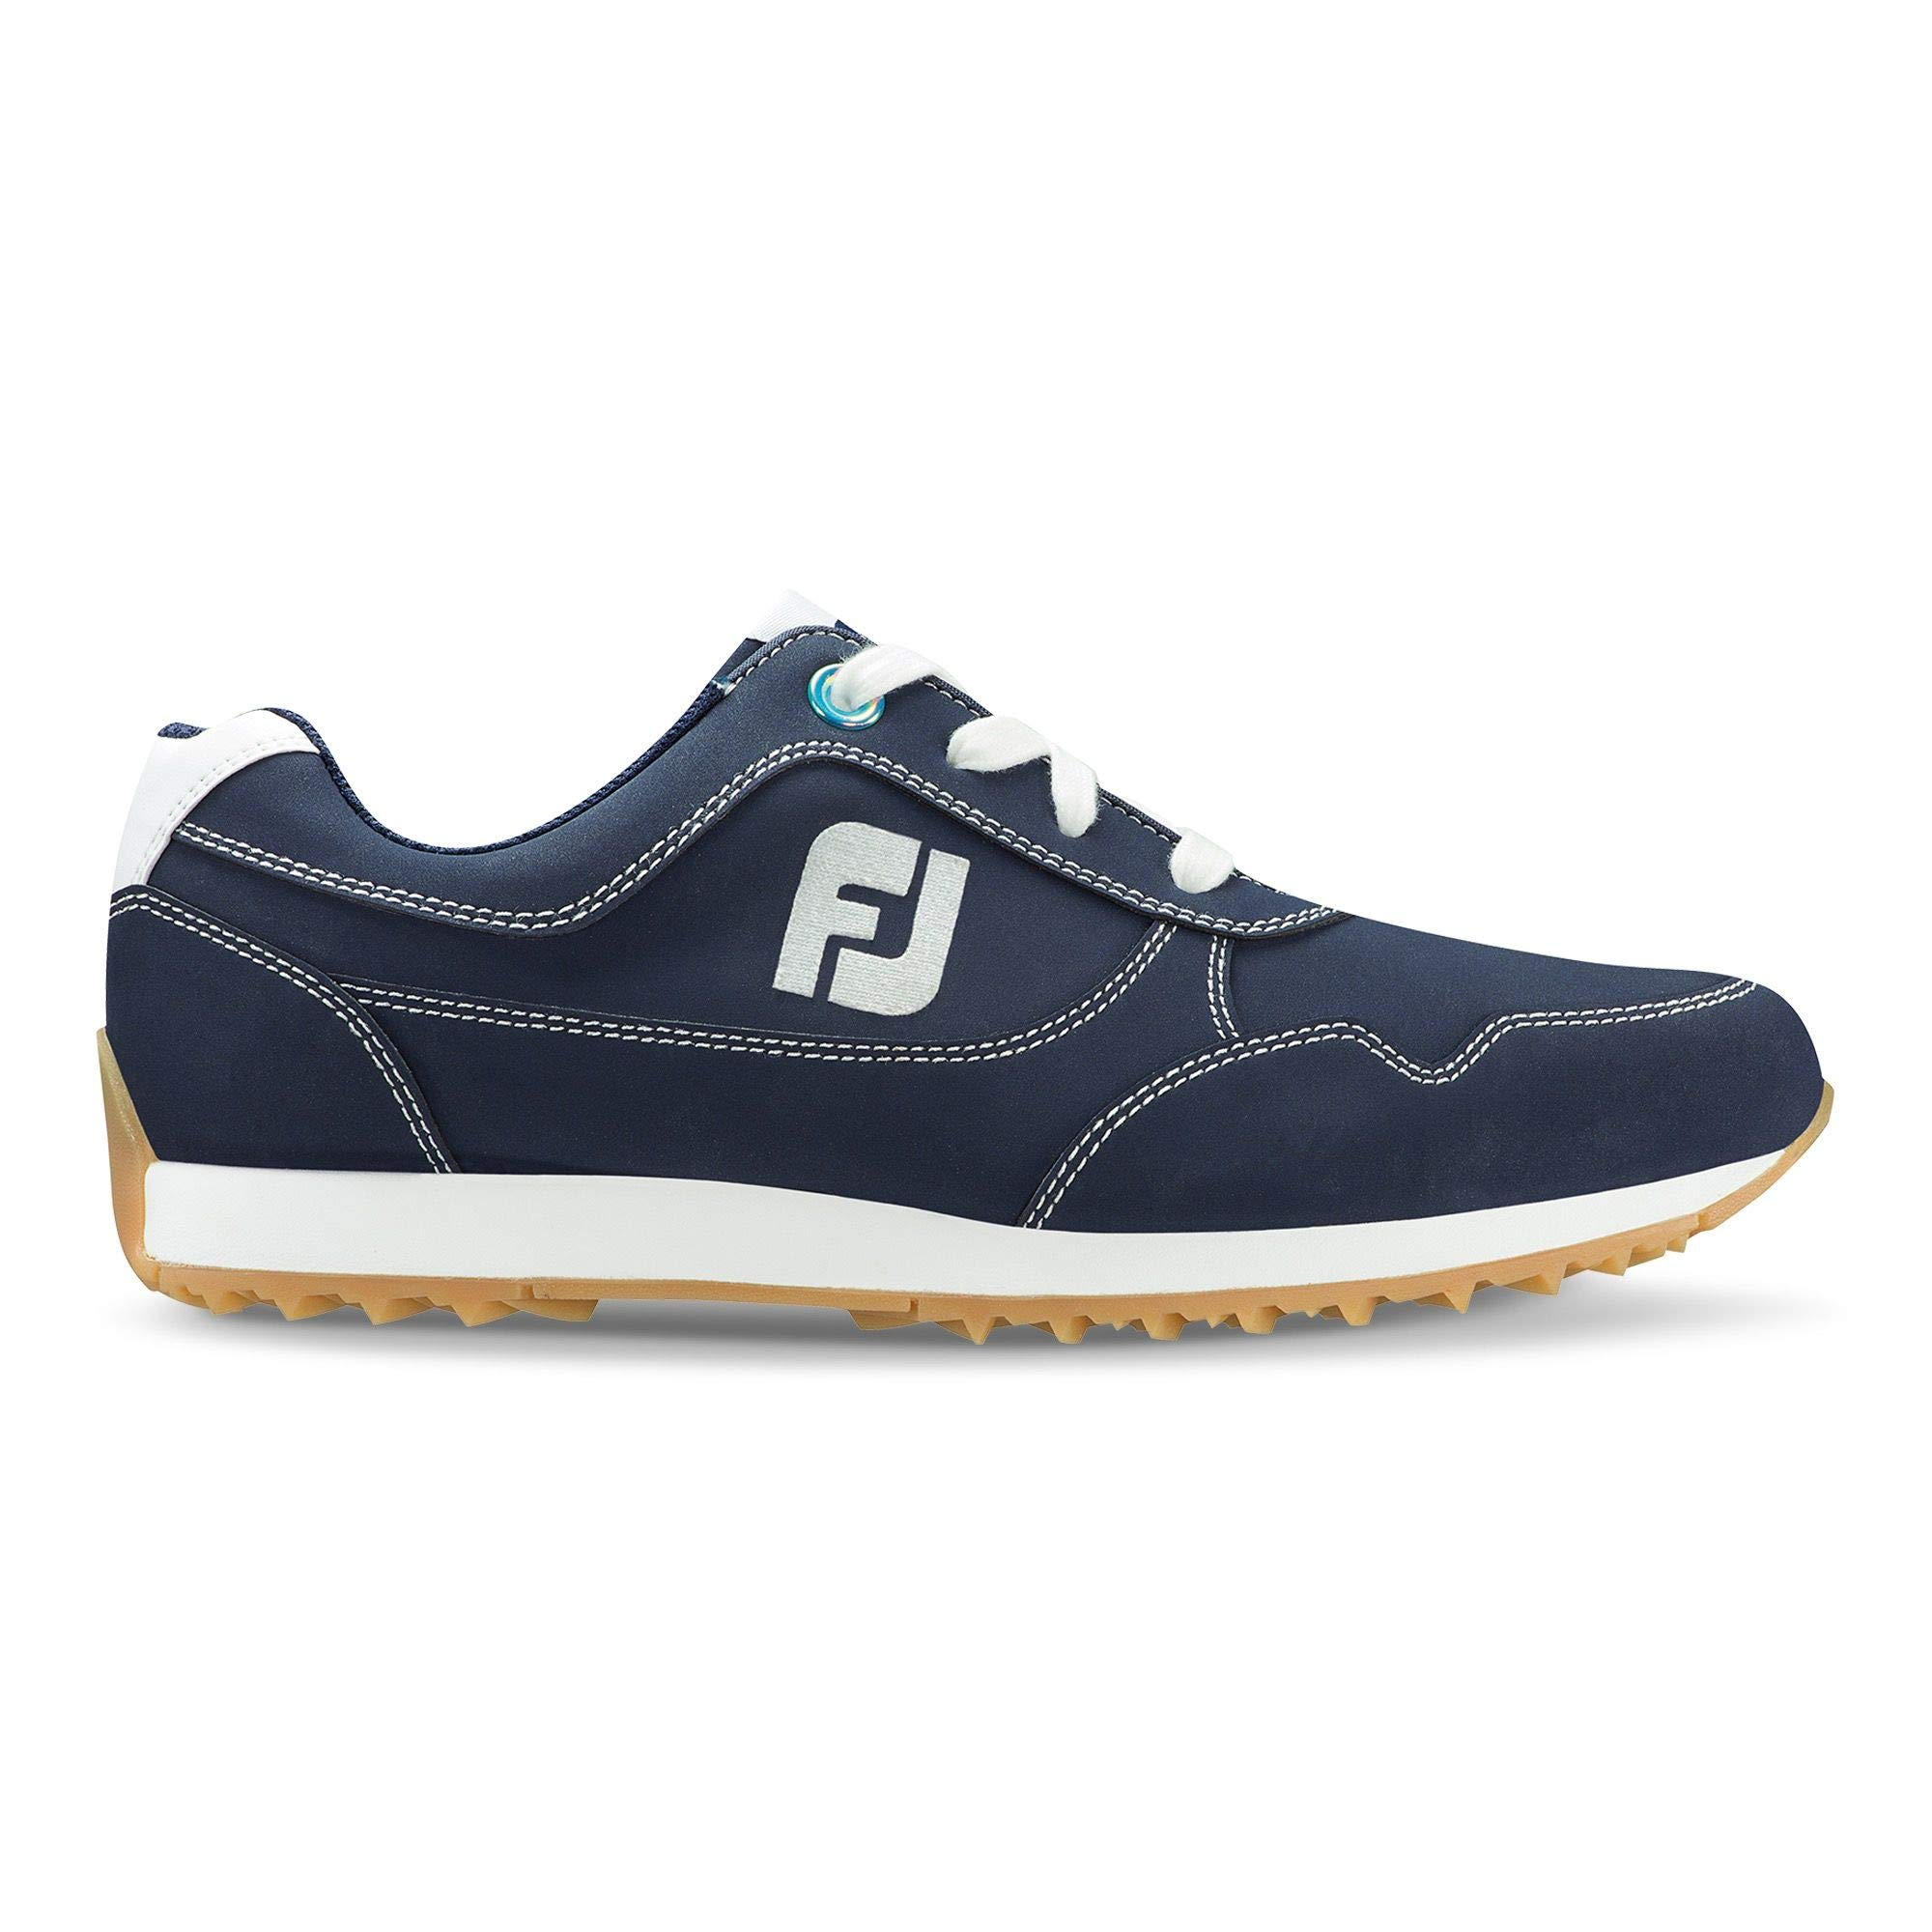 FootJoy Women's Sport Retro Golf Shoes Blue 8.5 W, Navy, US by FootJoy